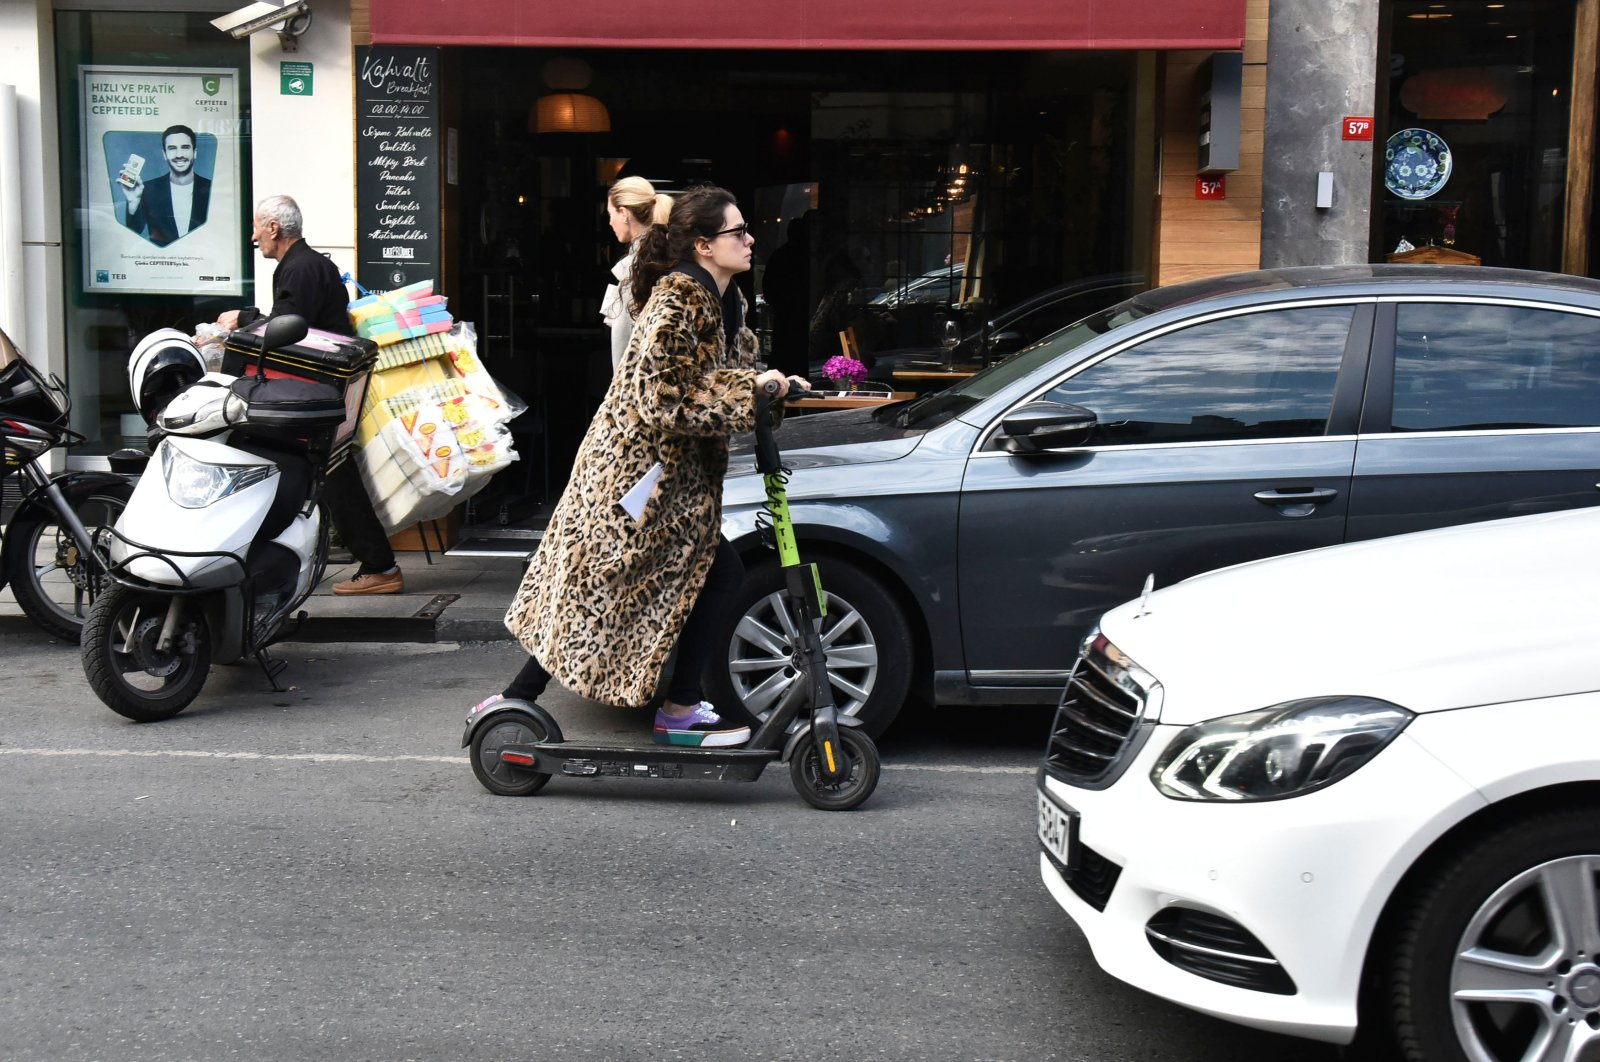 Actress Özge Özpirinççi rides an e-scooter in Bebek neighborhood, in Istanbul, Turkey, December 2, 2019. (PHOTO BY ALİ KESER)